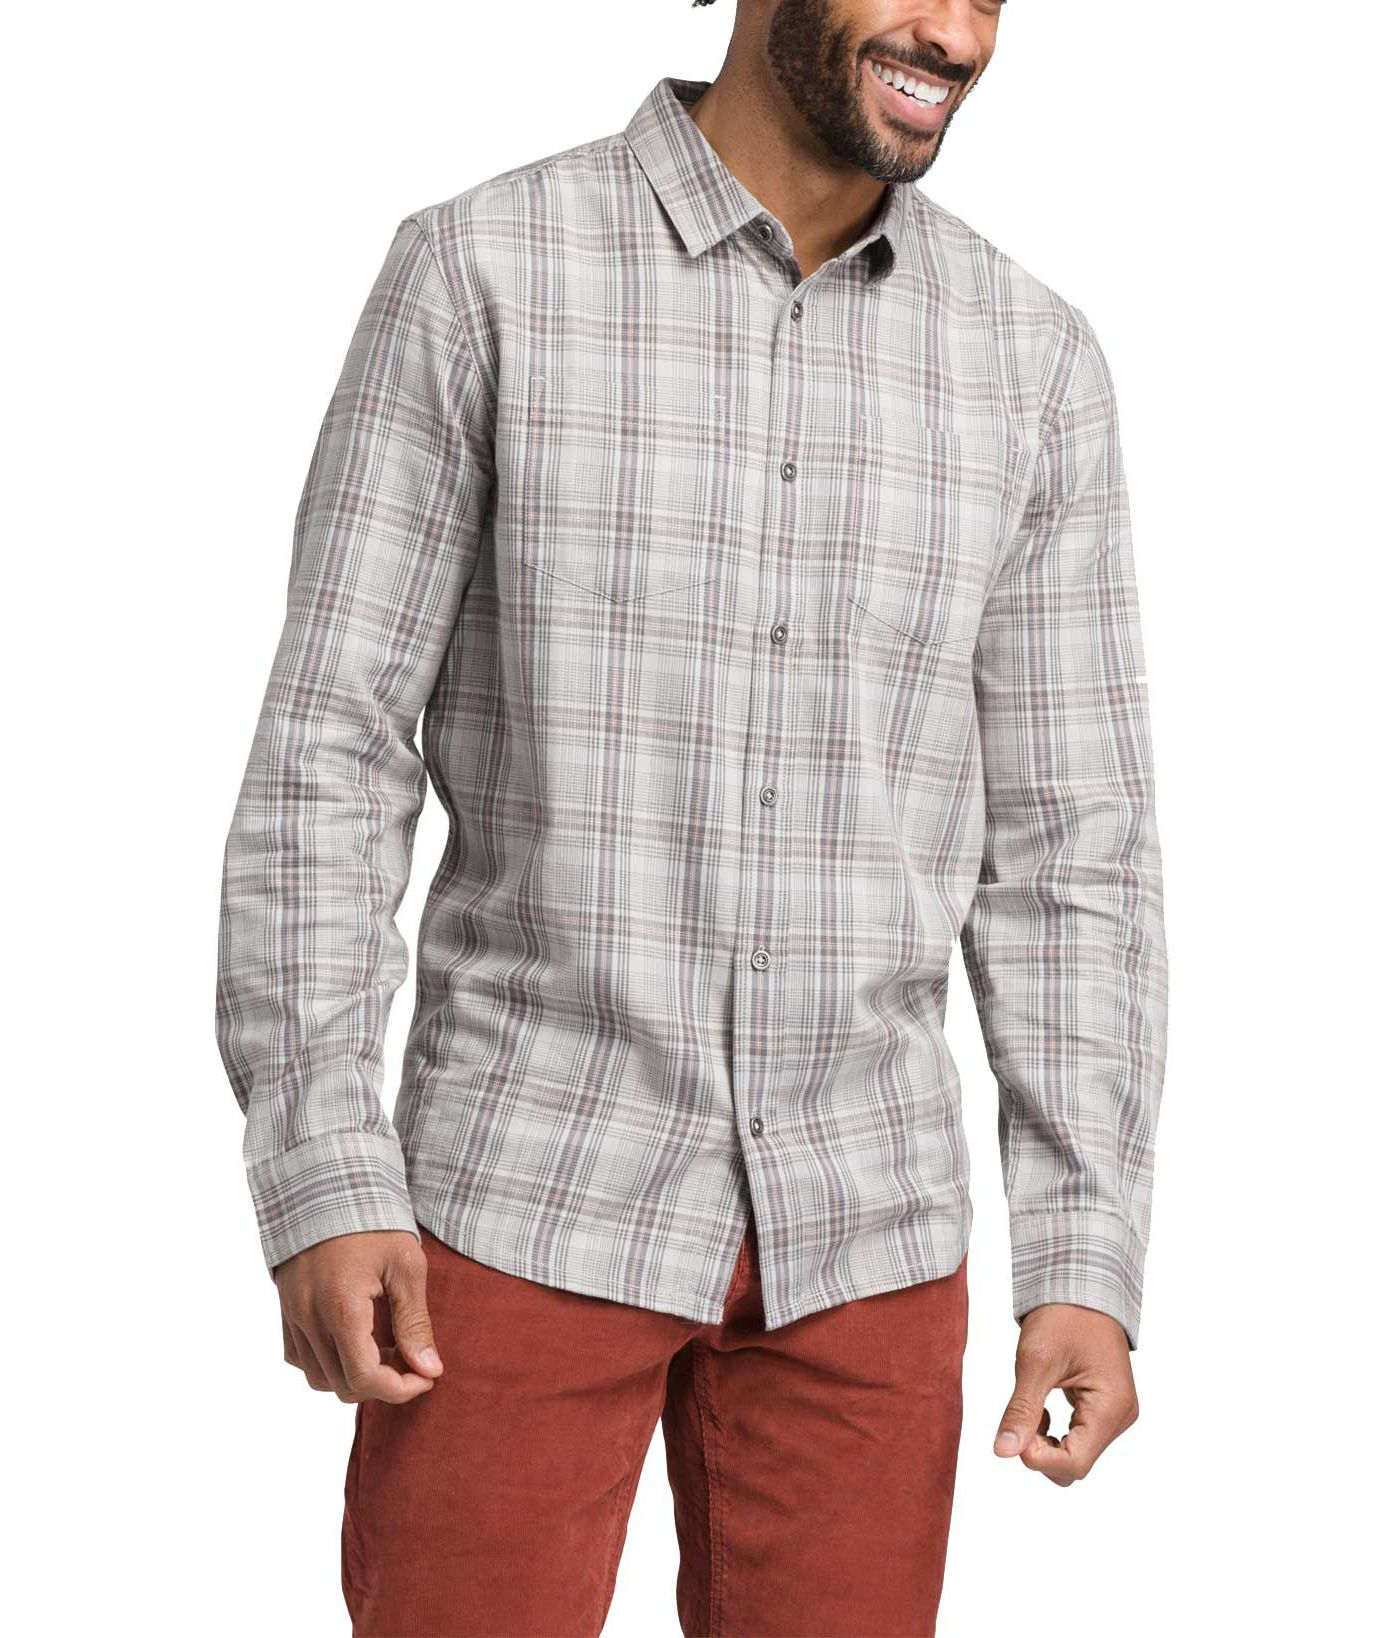 prAna Men's Holton Long Sleeve Button Down Shirt